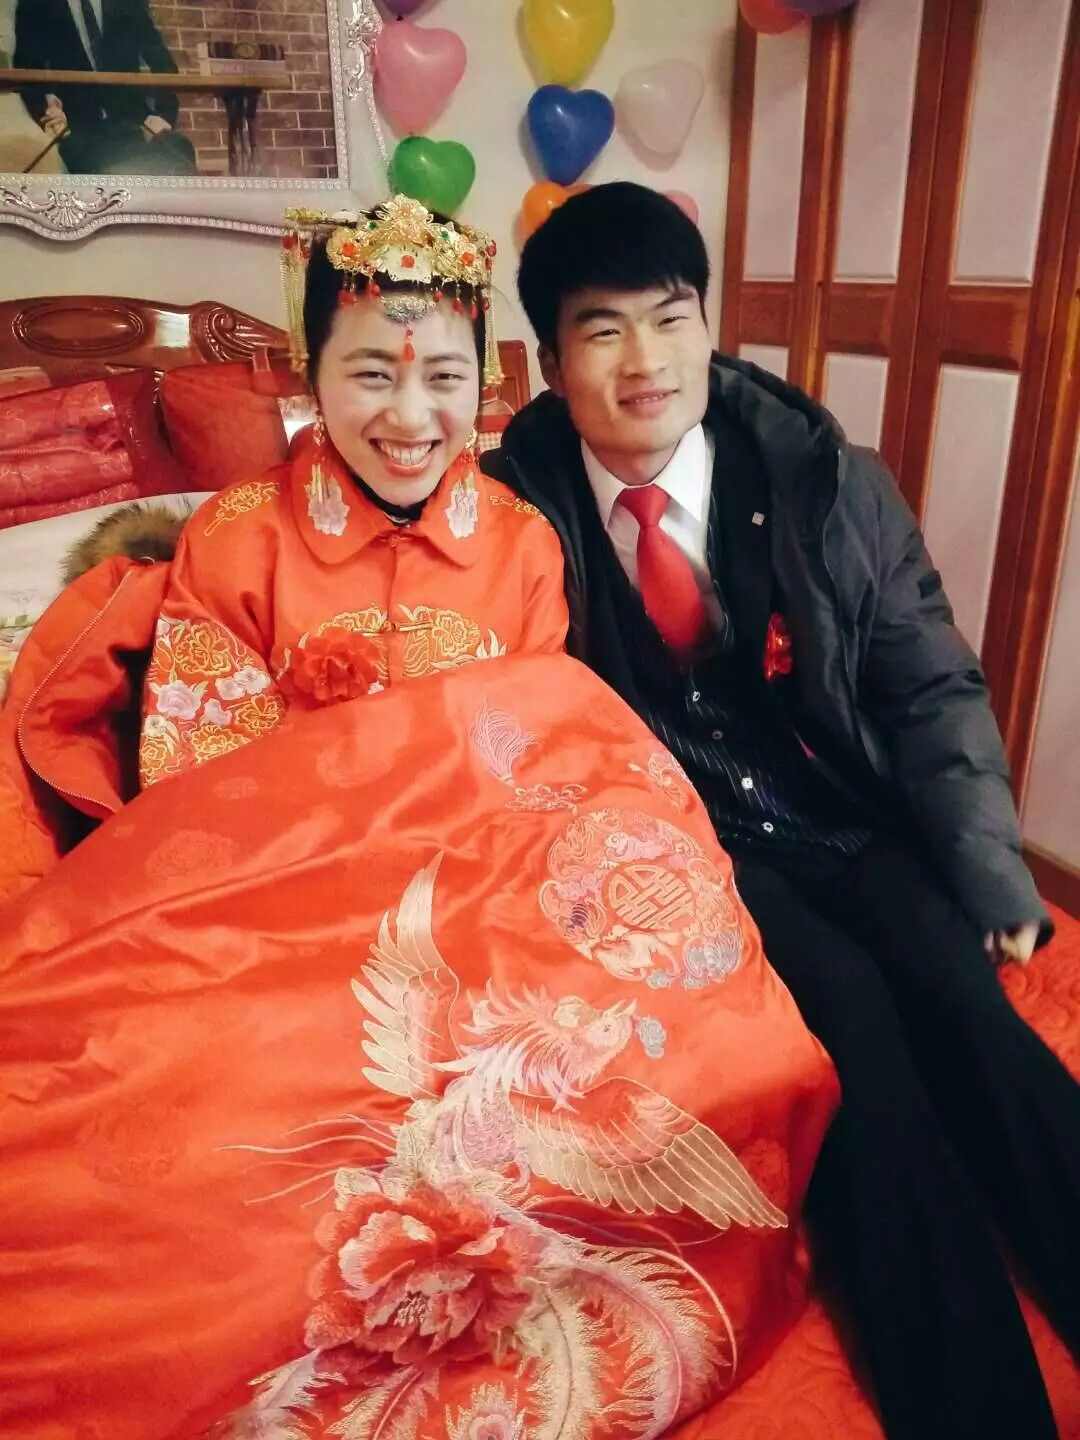 Chinese wedding, although some girl want to dress holy